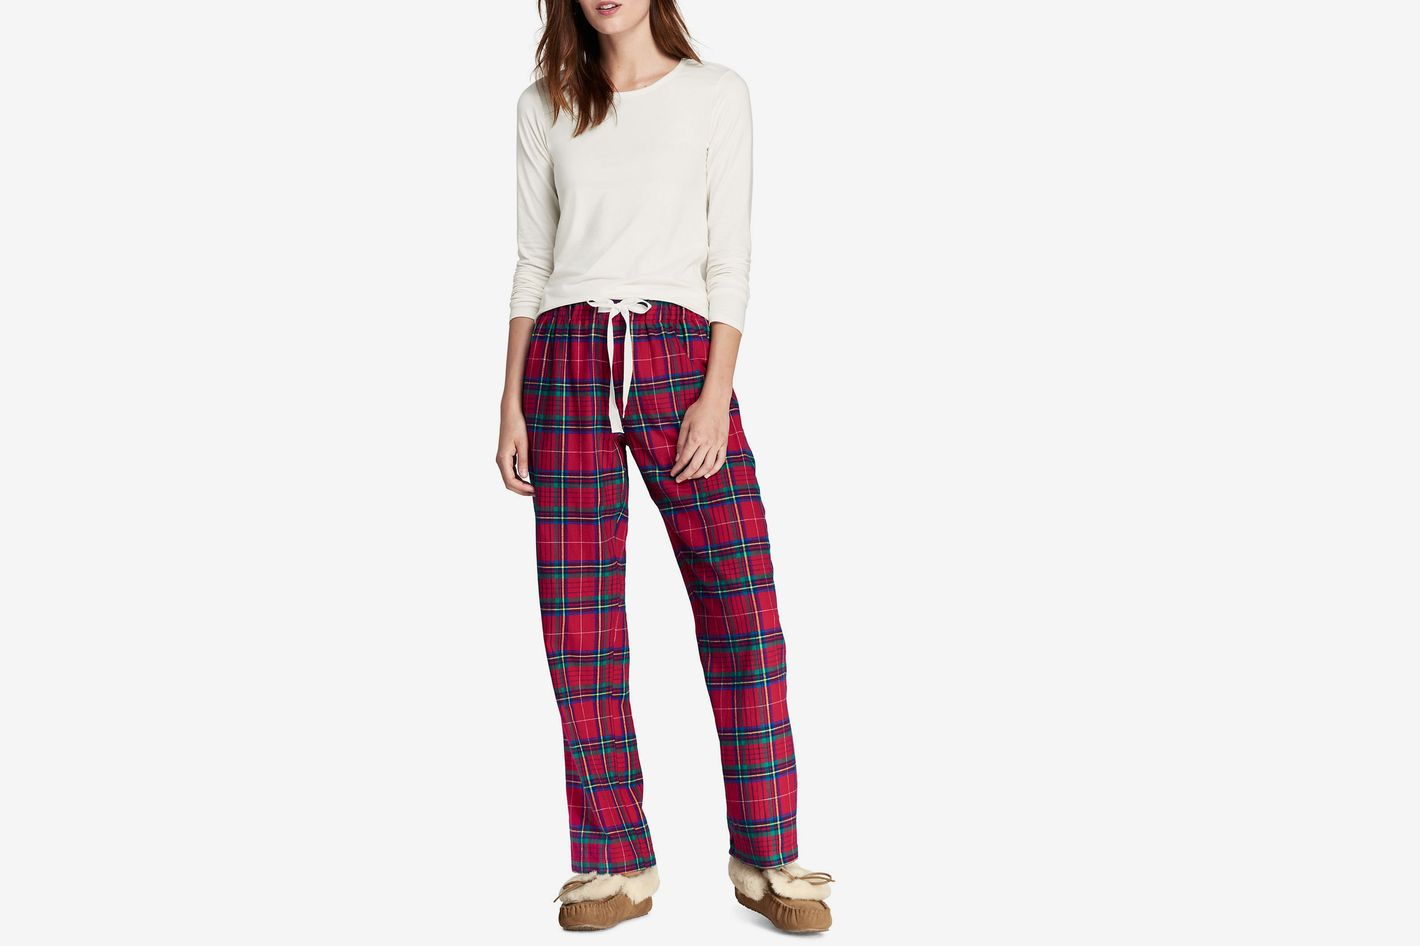 Lands' End Women's Knit Flannel Sleep Set